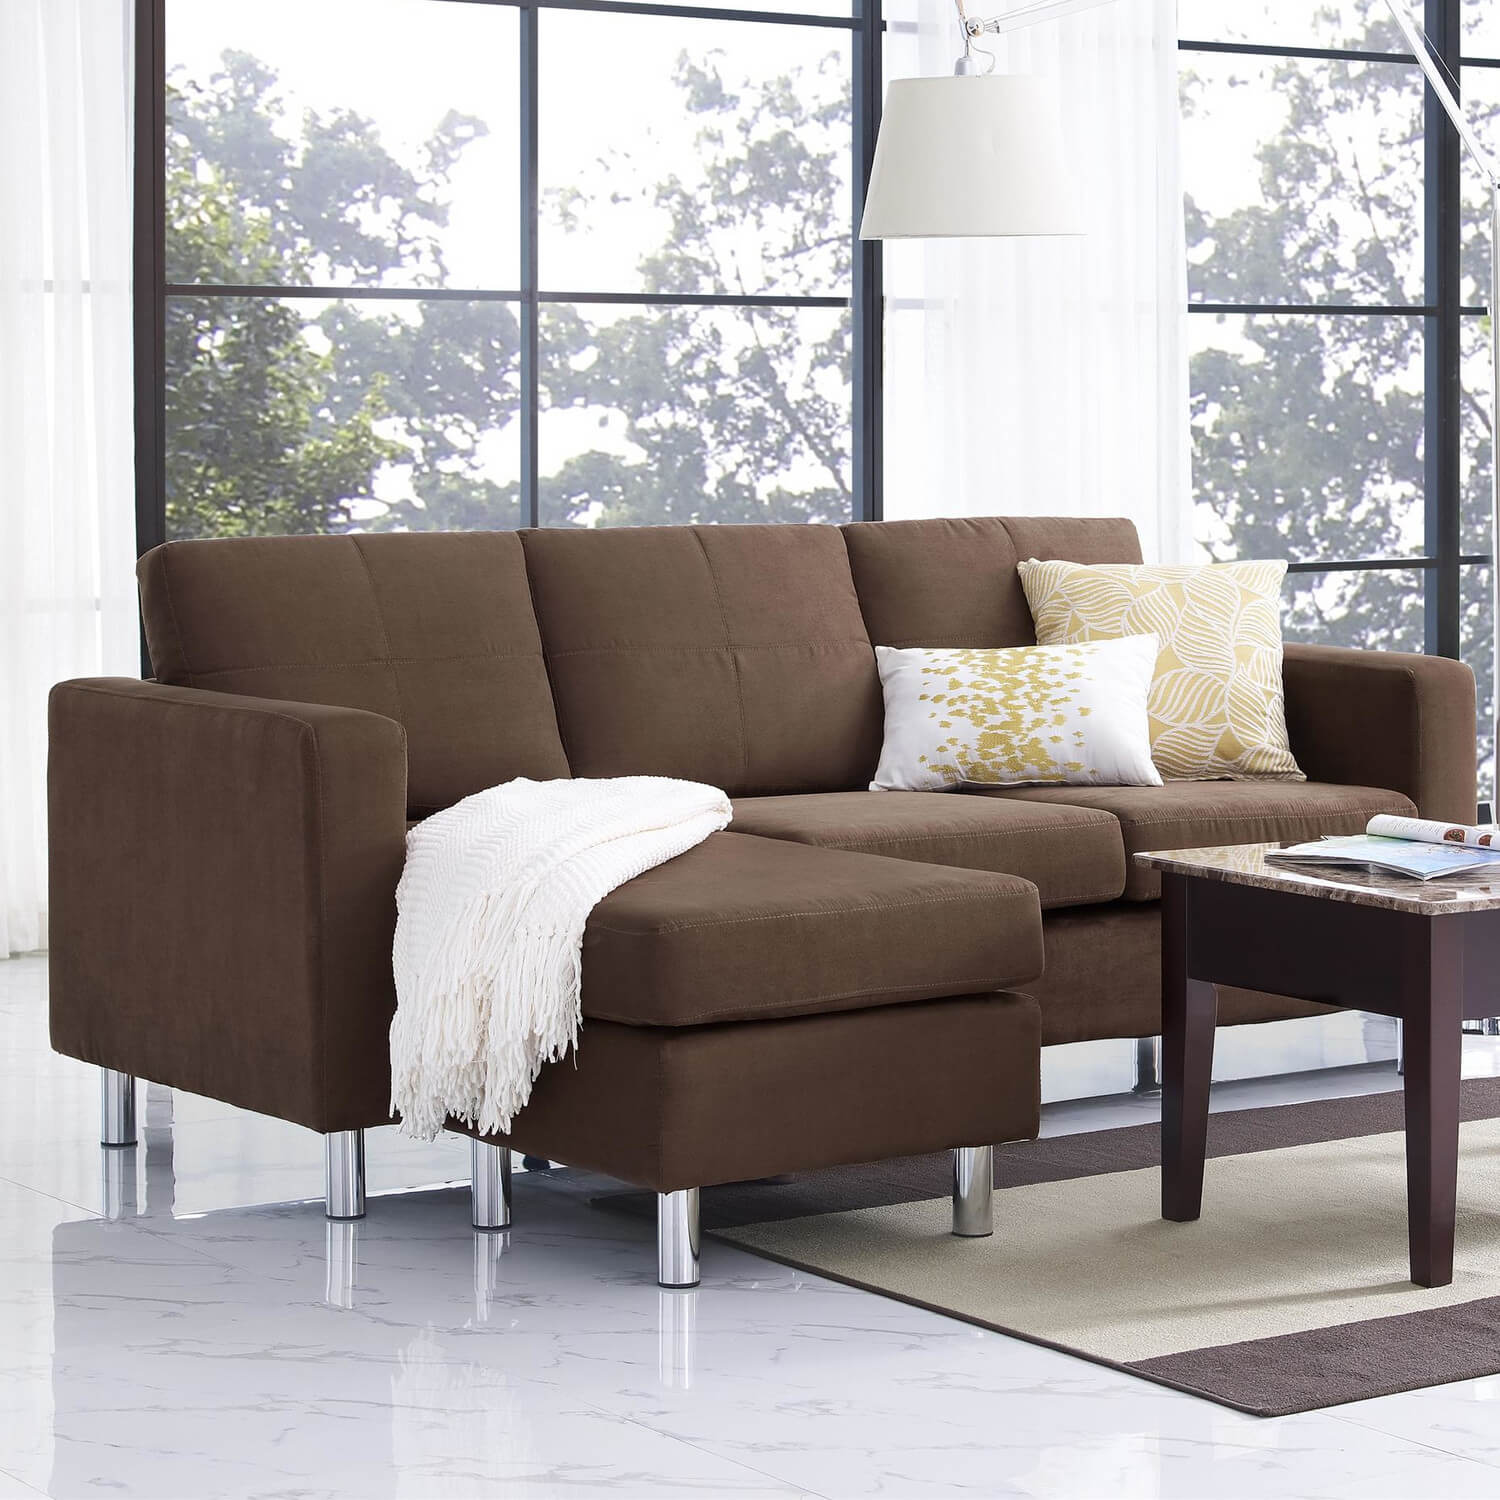 13 Sectional Sofas Under $500 Several Styles